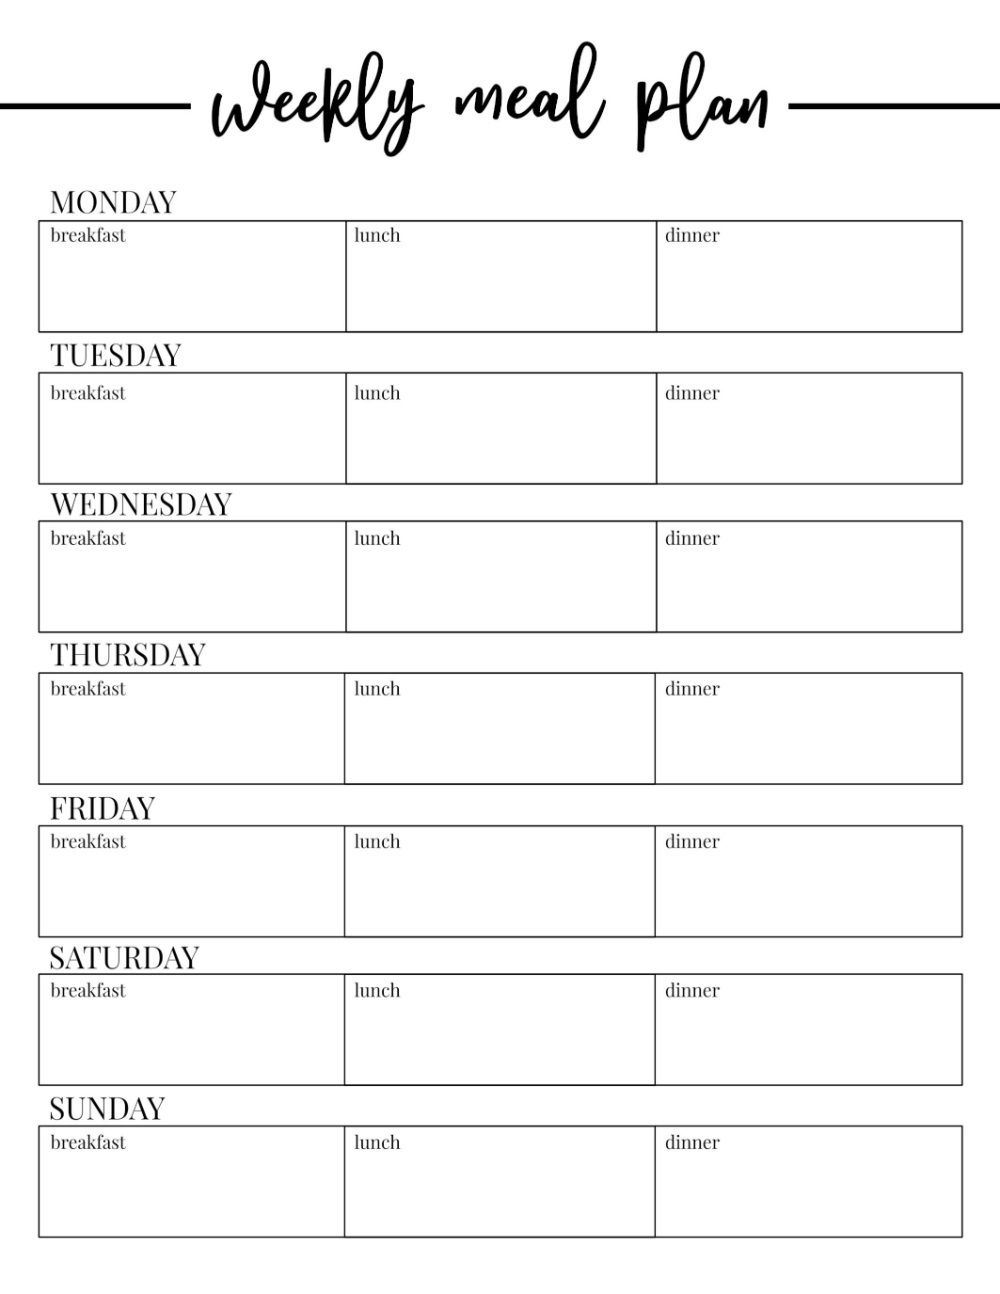 003 Breathtaking Meal Plan Calendar Template High Resolution  Excel Weekly 30 DayFull